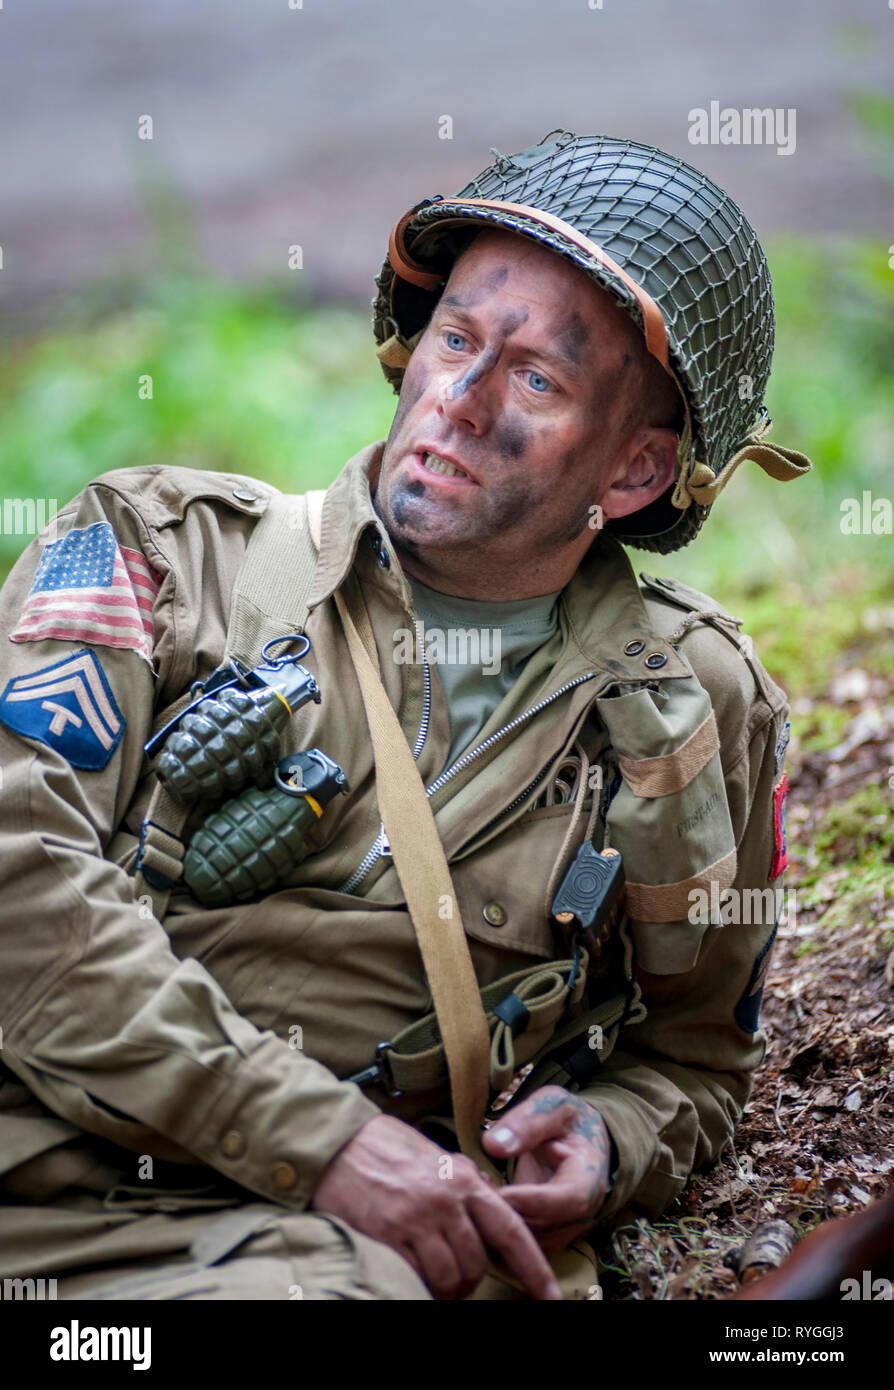 Woodhall Spa 1940s Festival - Woodhall Spa 1940s Festival - portrait of an American soldier an Airborne Diviasion of World War 2 Stock Photo